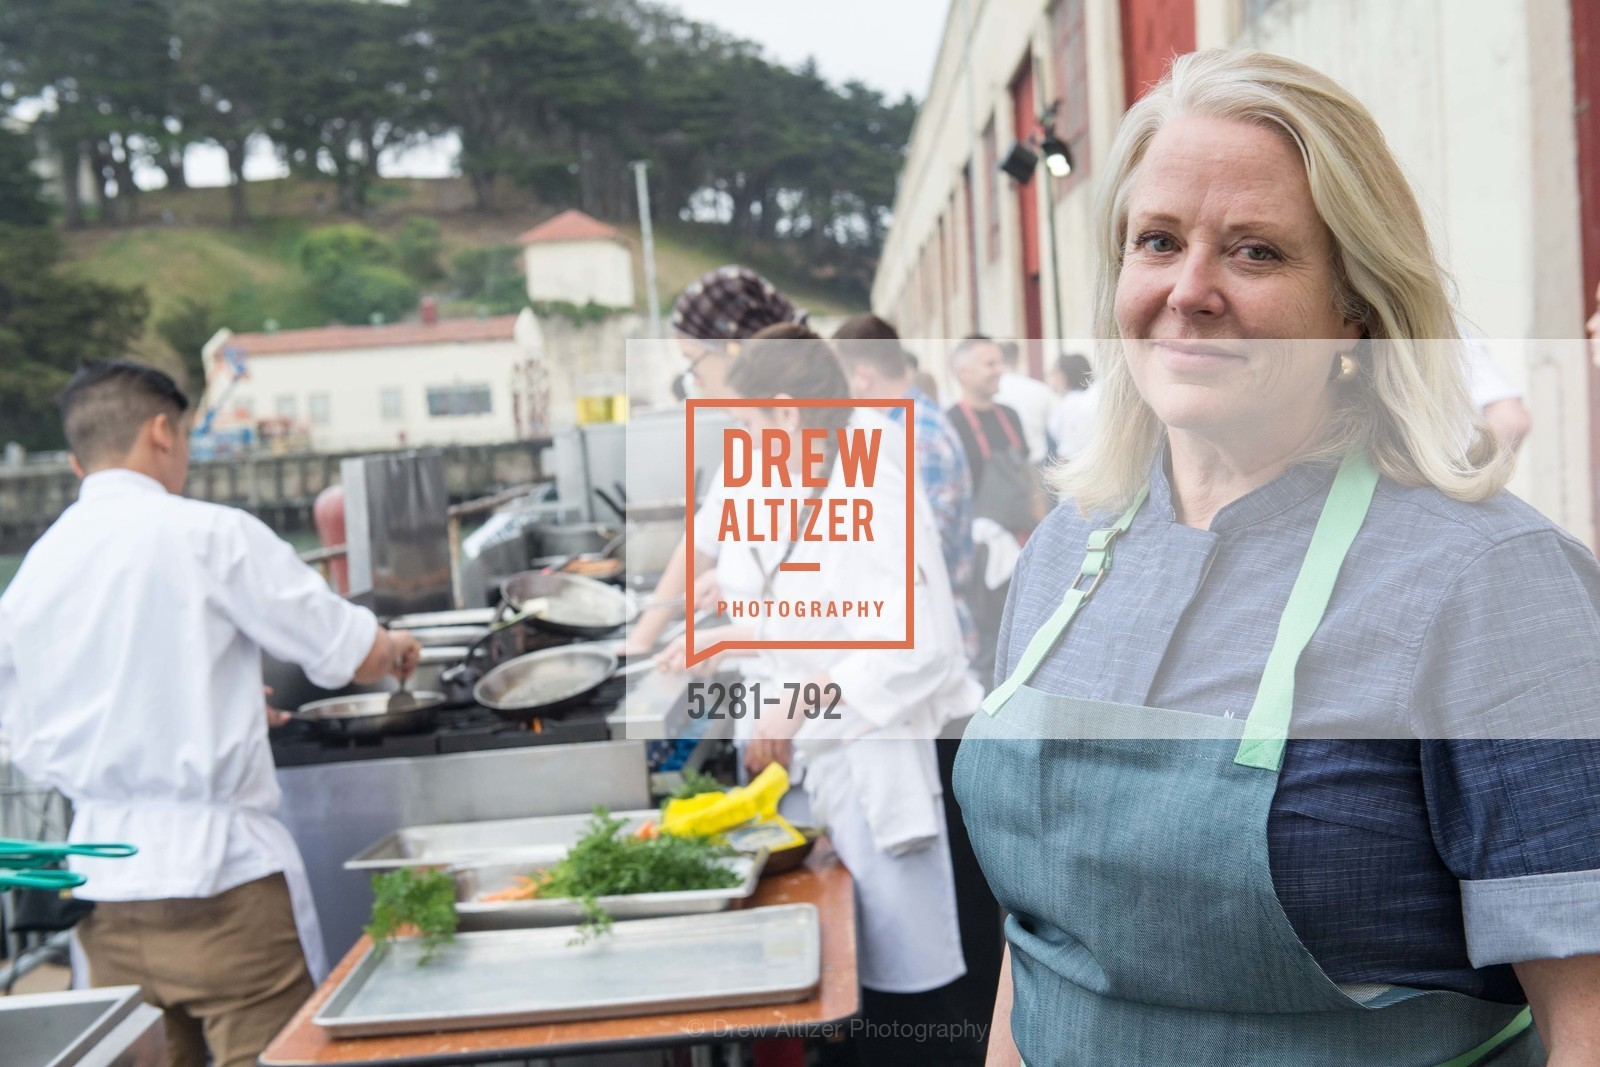 Nancy Oakes, MEALS ON WHEELS OF SAN FRANCISCO'S 28th Annual Star Chefs and Vintners Gala, US, April 19th, 2015,Drew Altizer, Drew Altizer Photography, full-service agency, private events, San Francisco photographer, photographer california